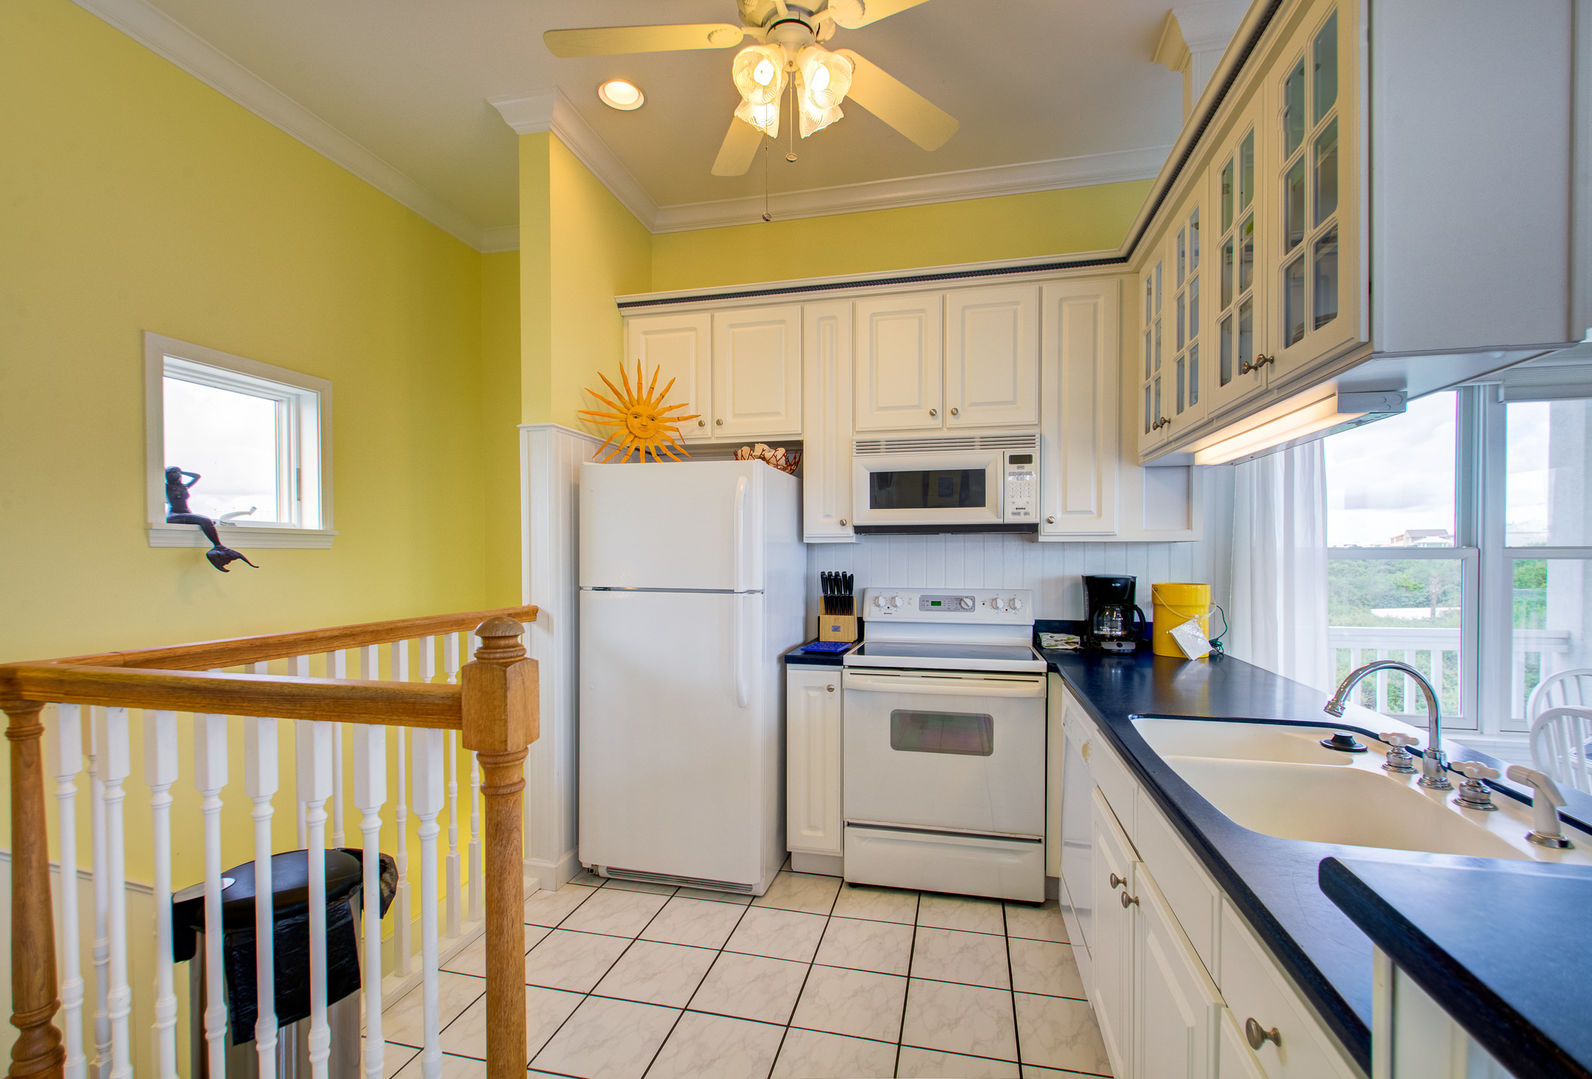 Kitchen with Microwave, Coffee Maker, Refrigerator, and Ceiling Fan.